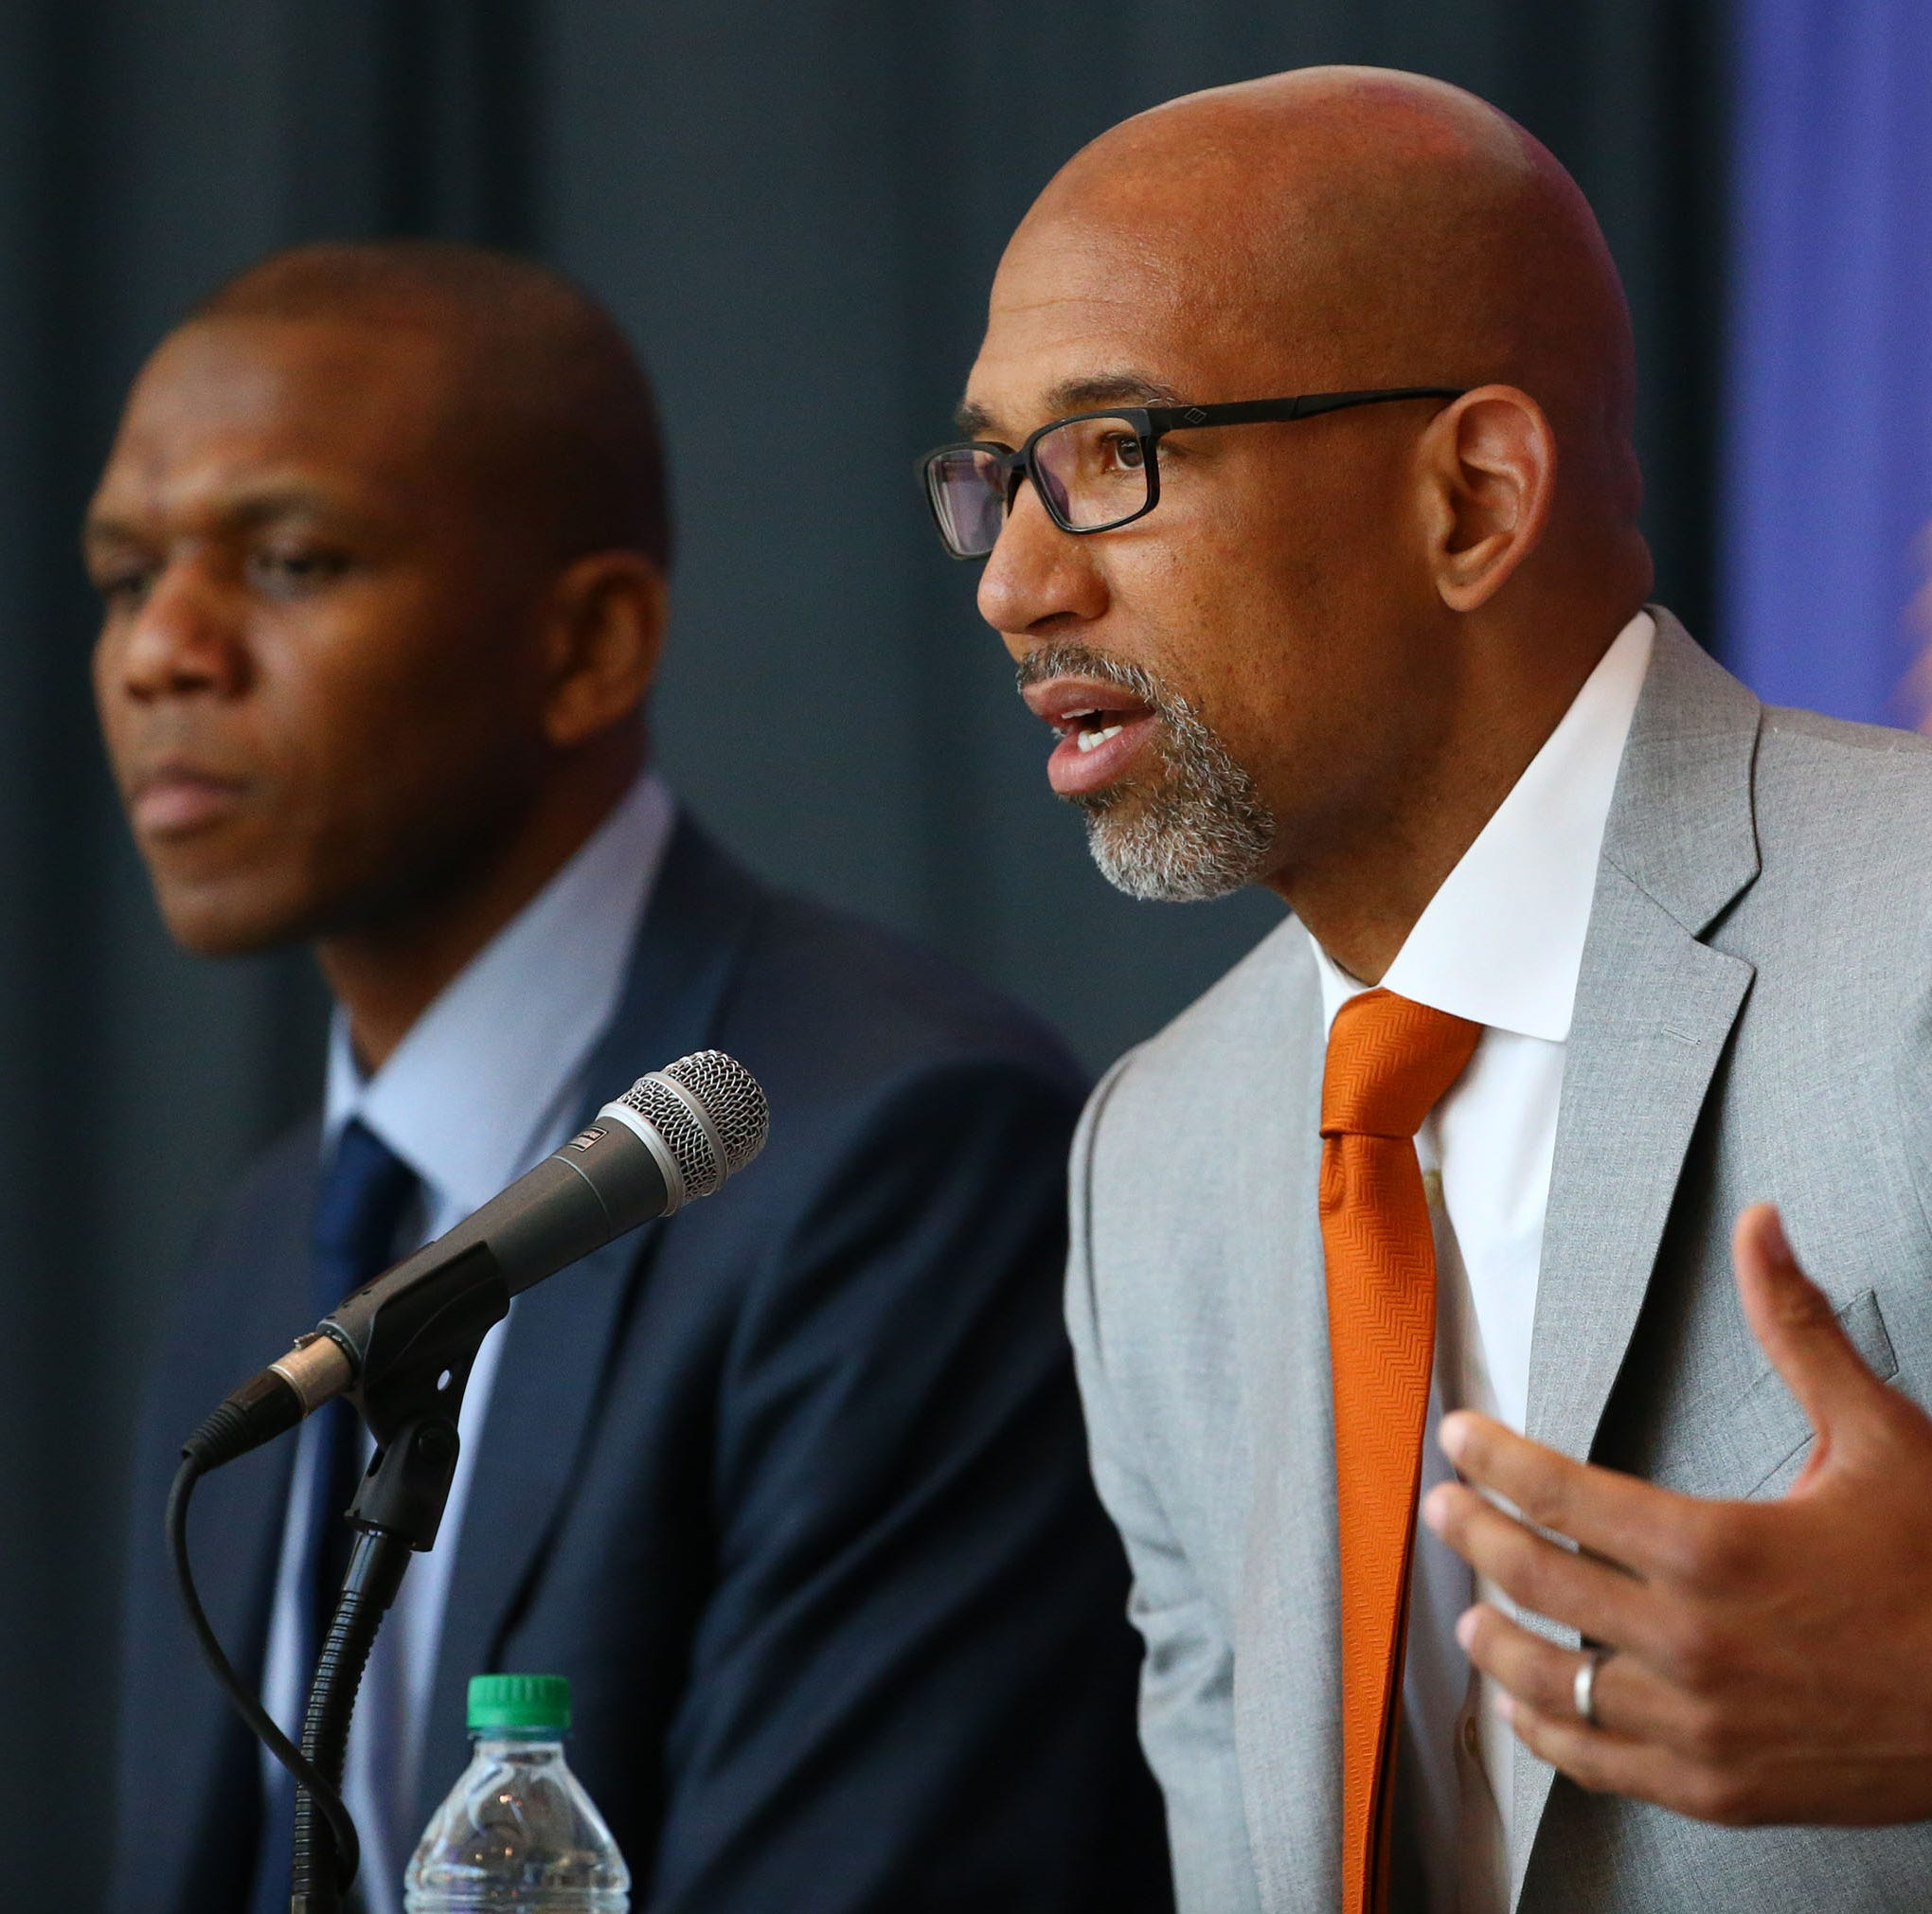 Jerry Colangelo: 'Sea change' in Suns' front office makes timing right for Monty Williams